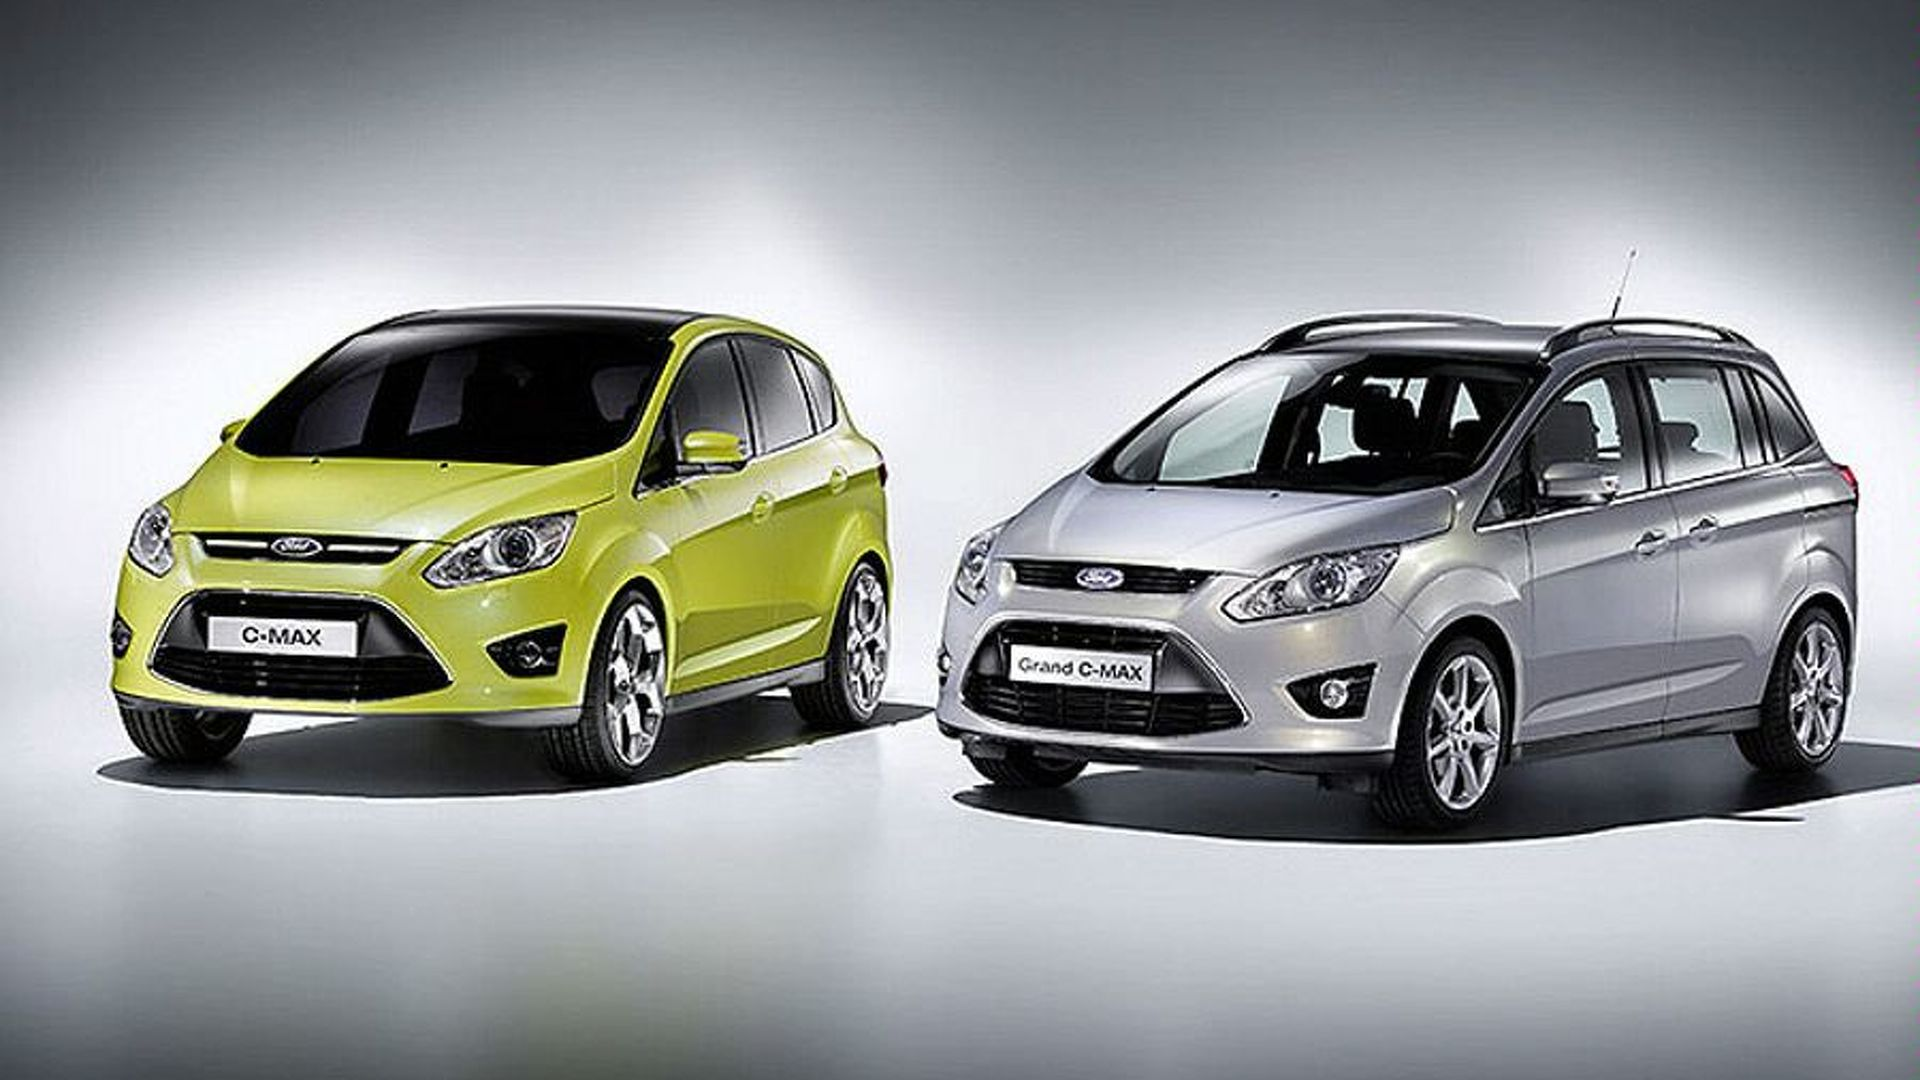 Next Generation 2012 Ford Focus and 2011 Lincoln MKX to Debut in Detroit